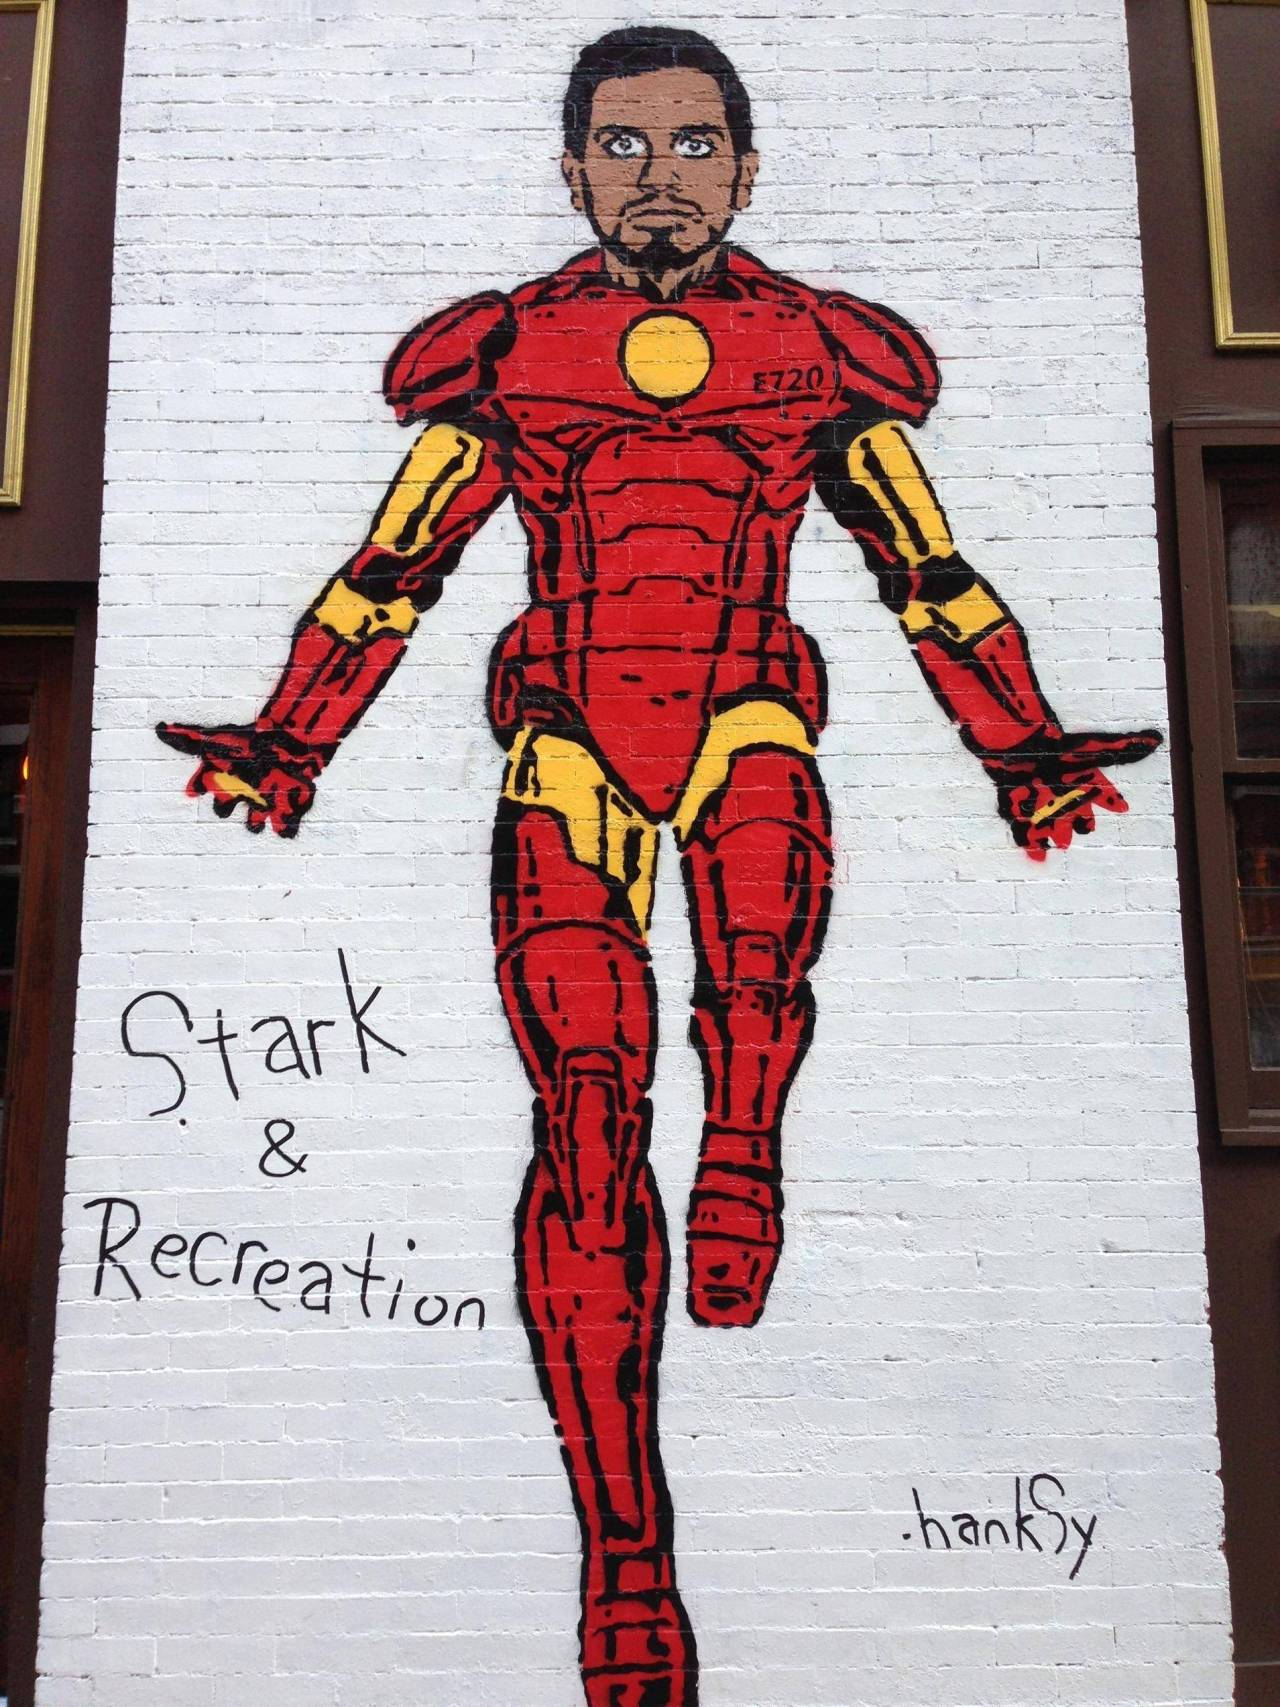 stark & recreation by hankSy